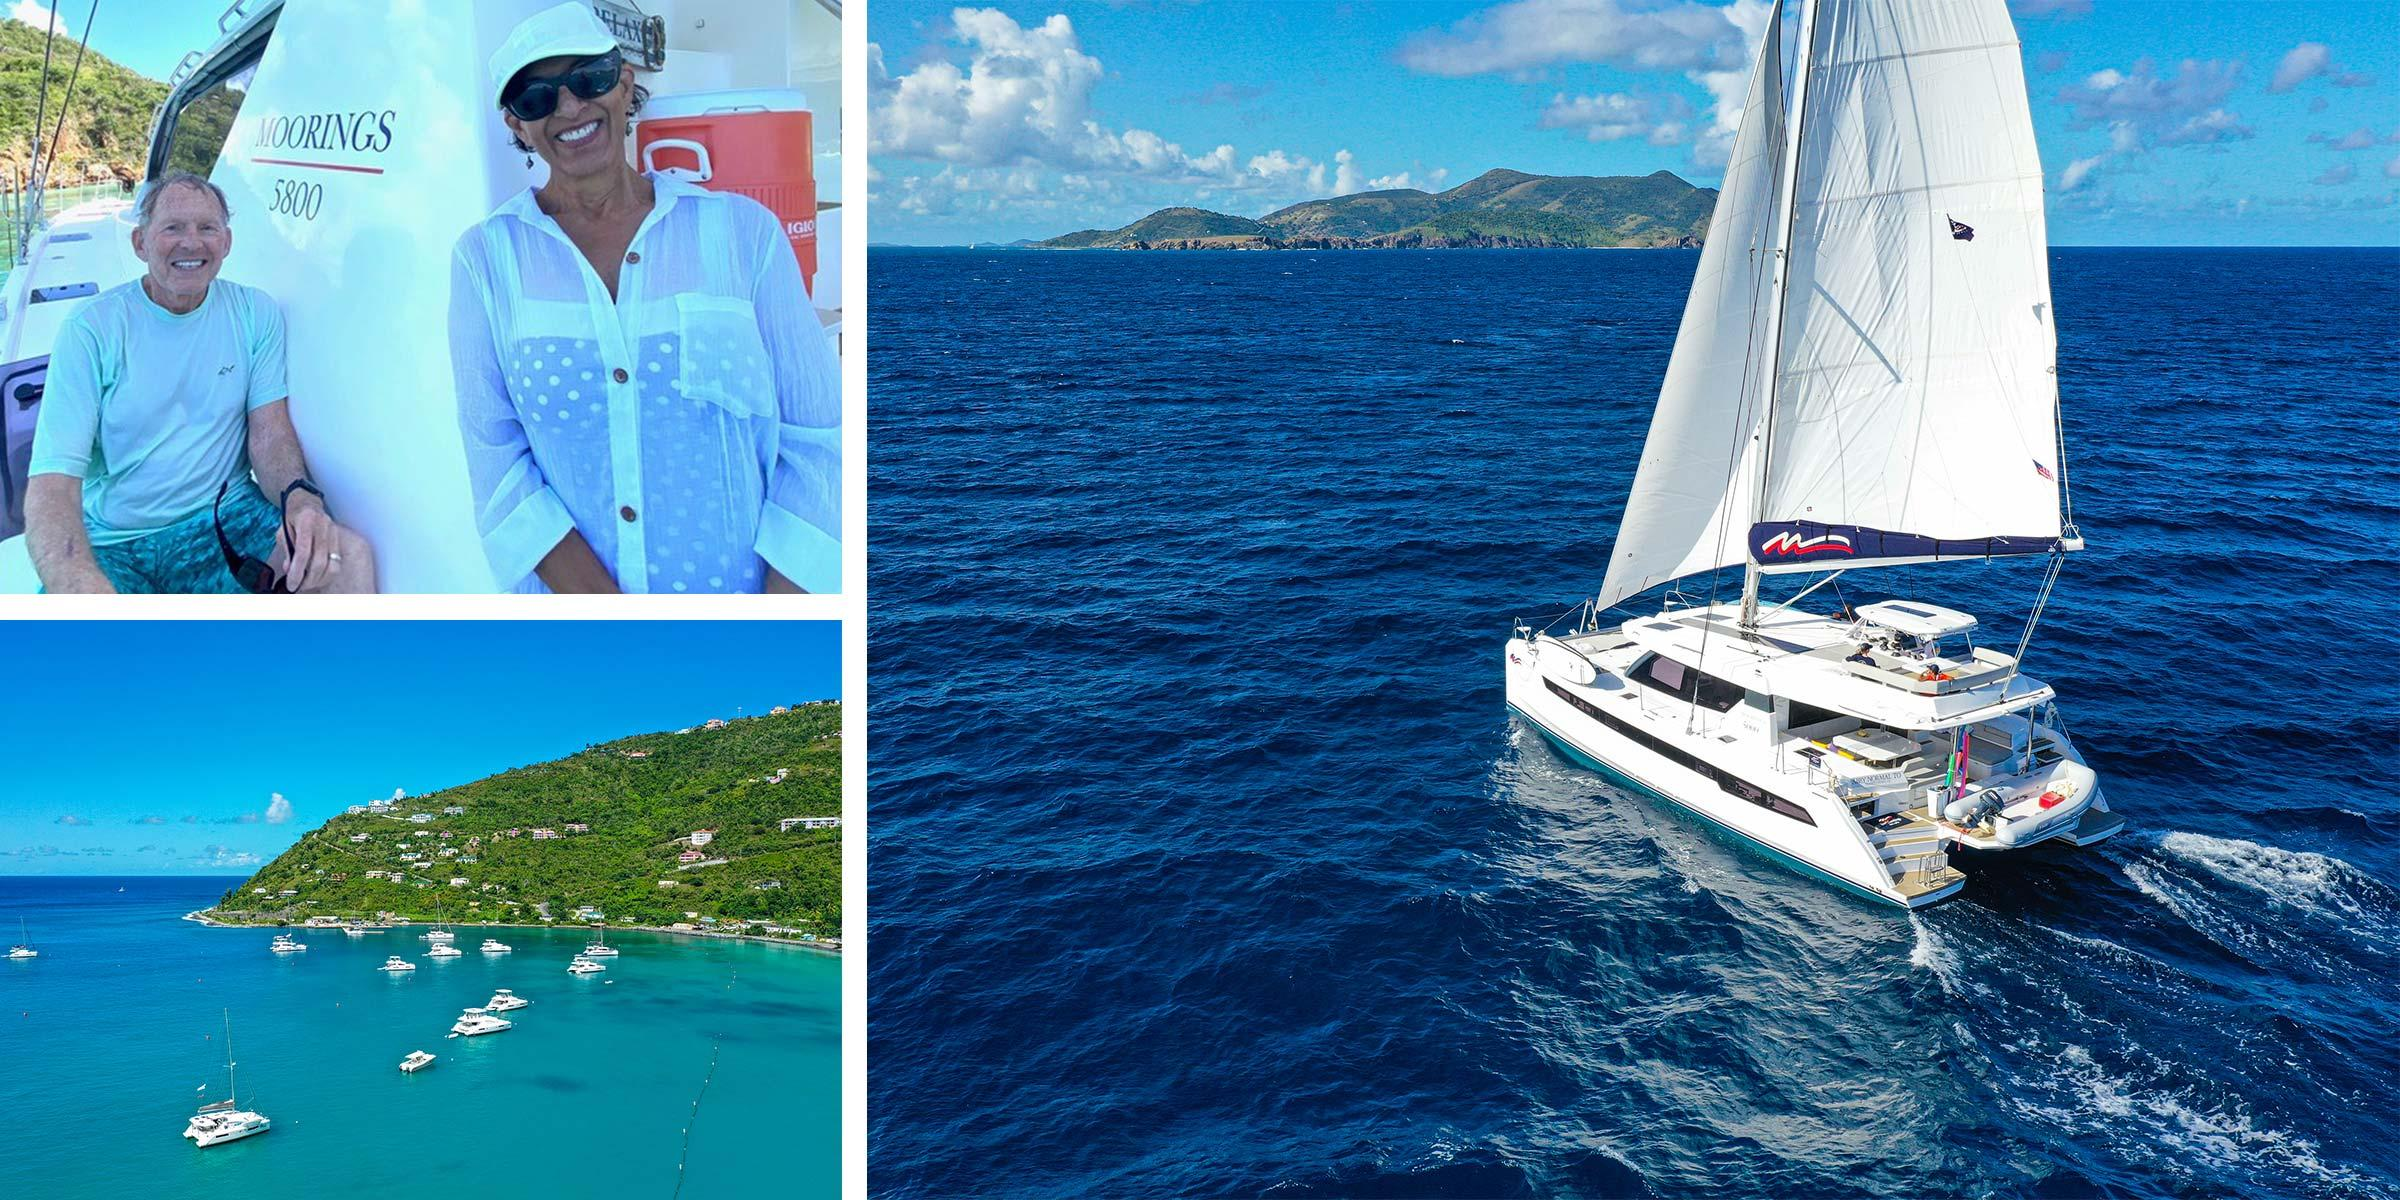 Tony Rainold and wife Yolanda on a Moorings 5800 - Moorings 5000 under sail in the BVI